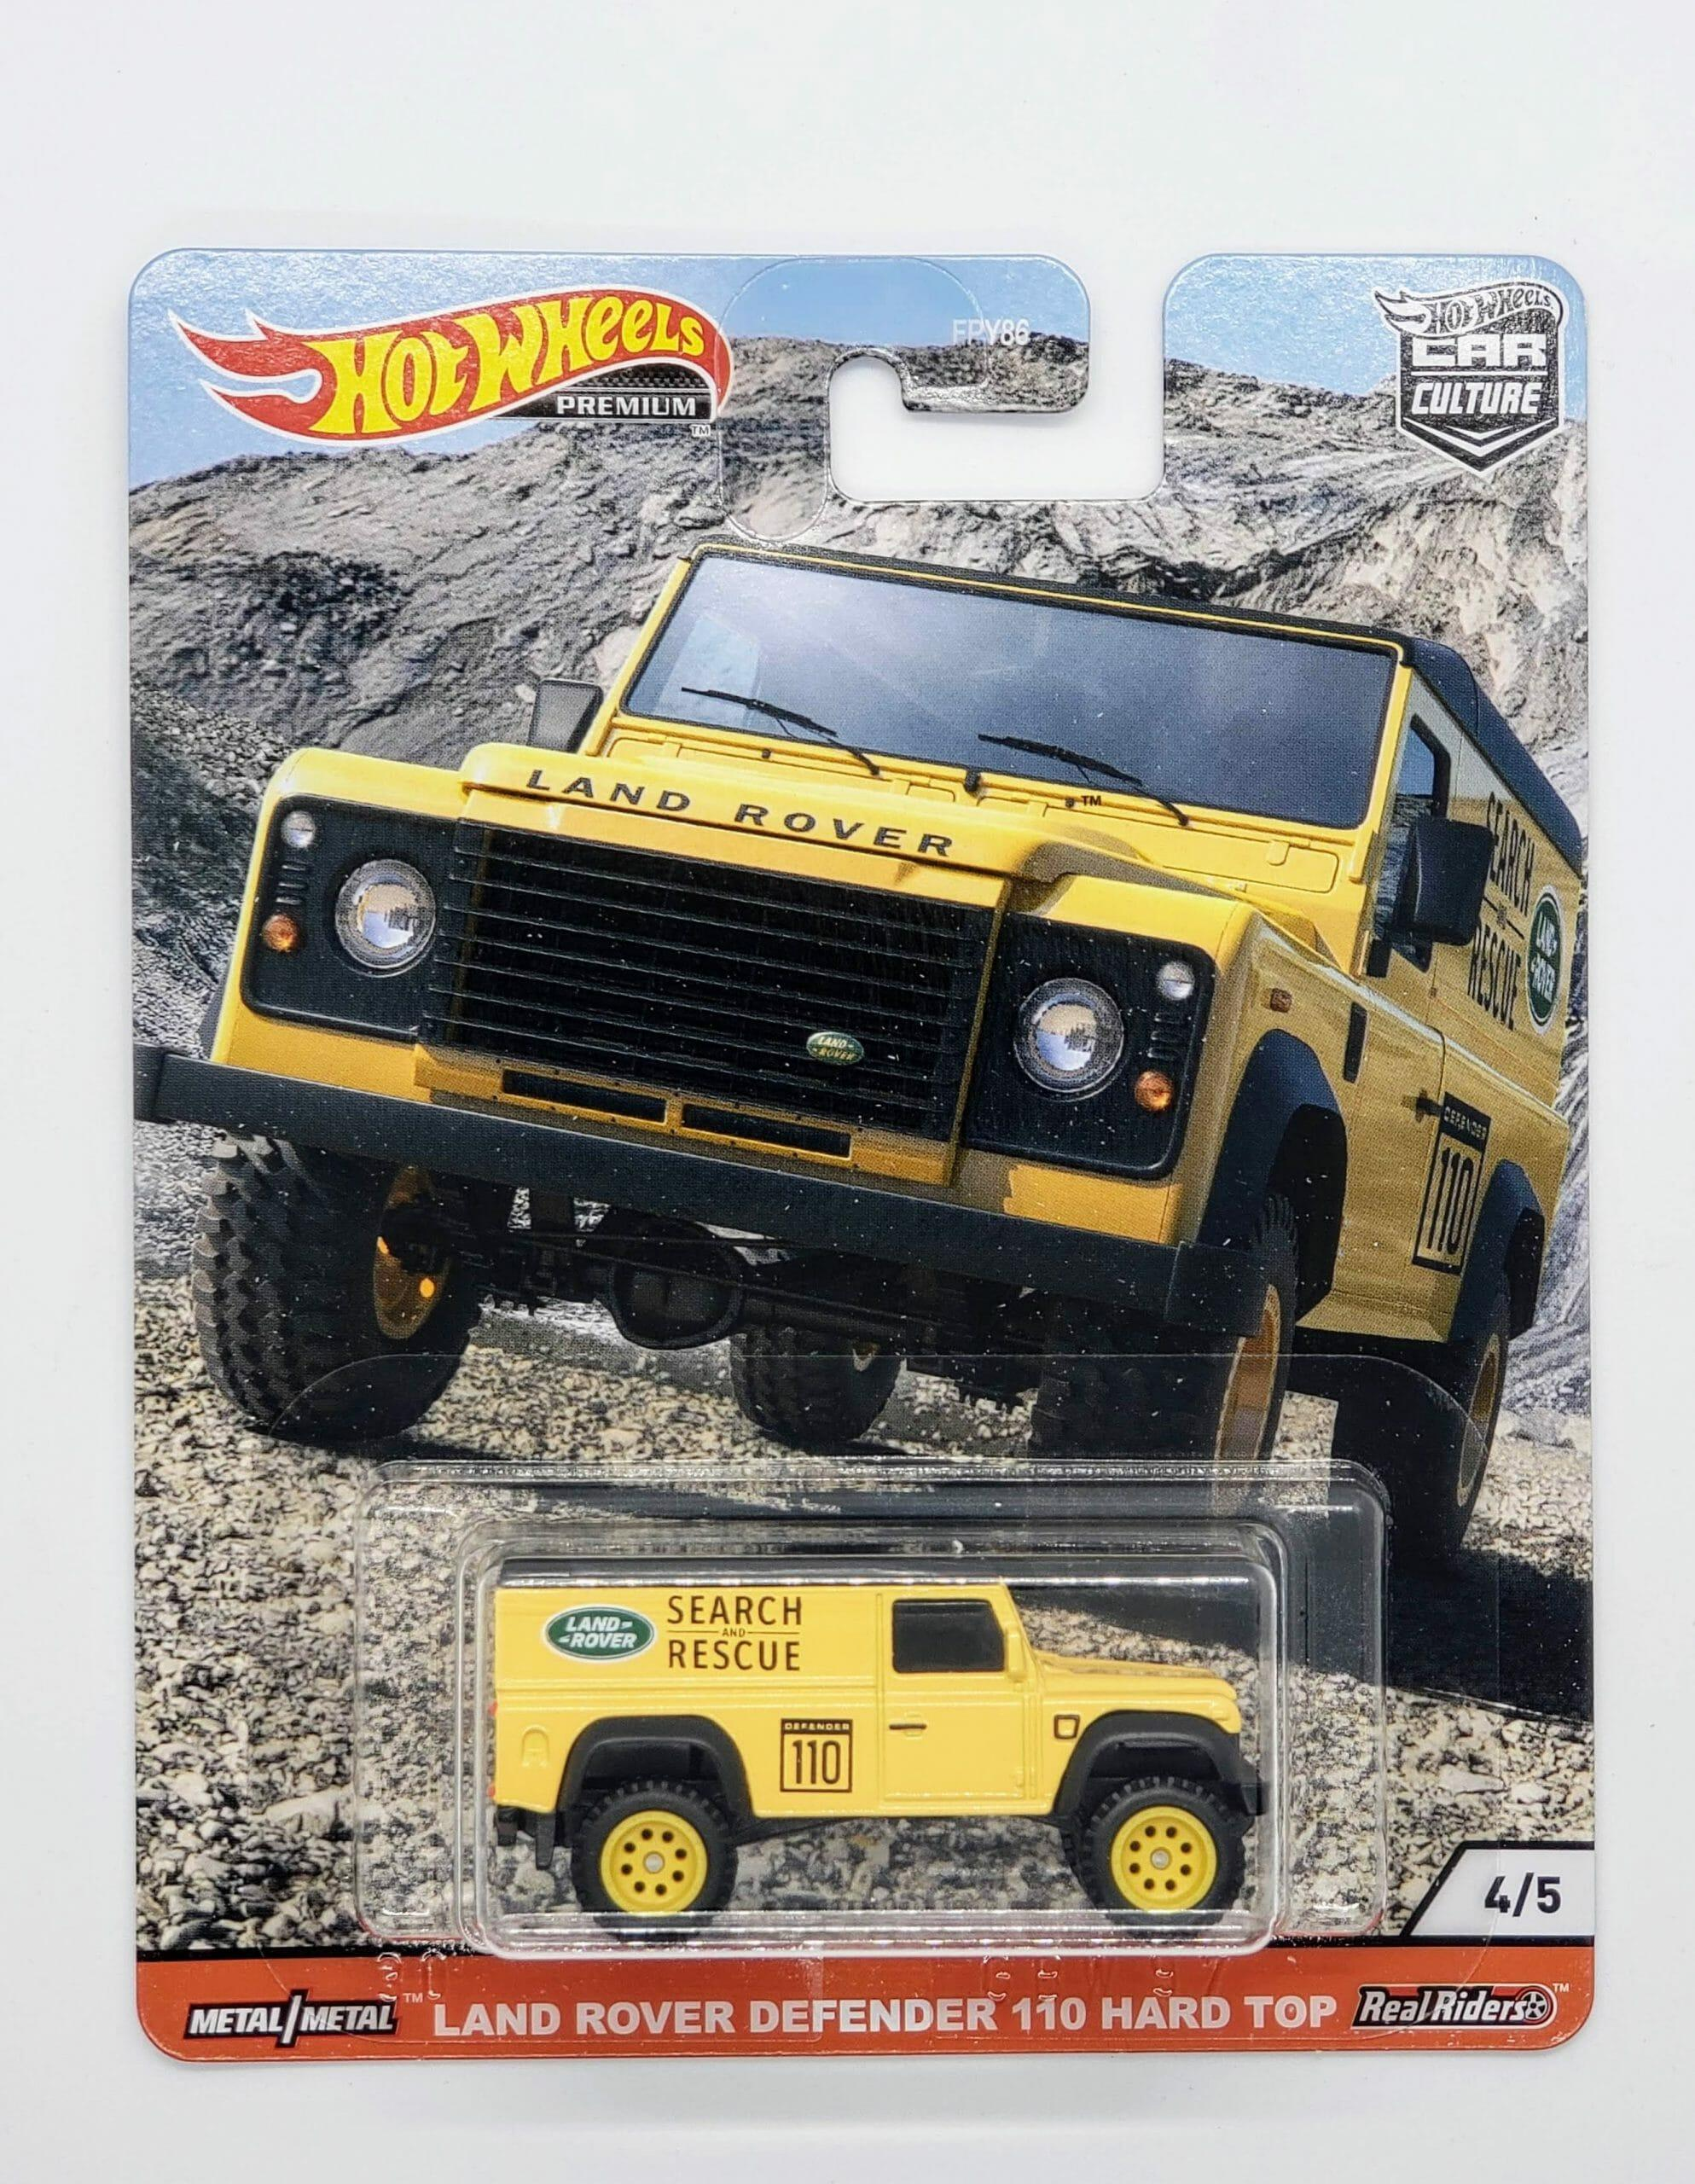 Hot Wheels Car Culture Wild Terrain Land Rover Defender 110 Hard Top (GJP86/FPY86)